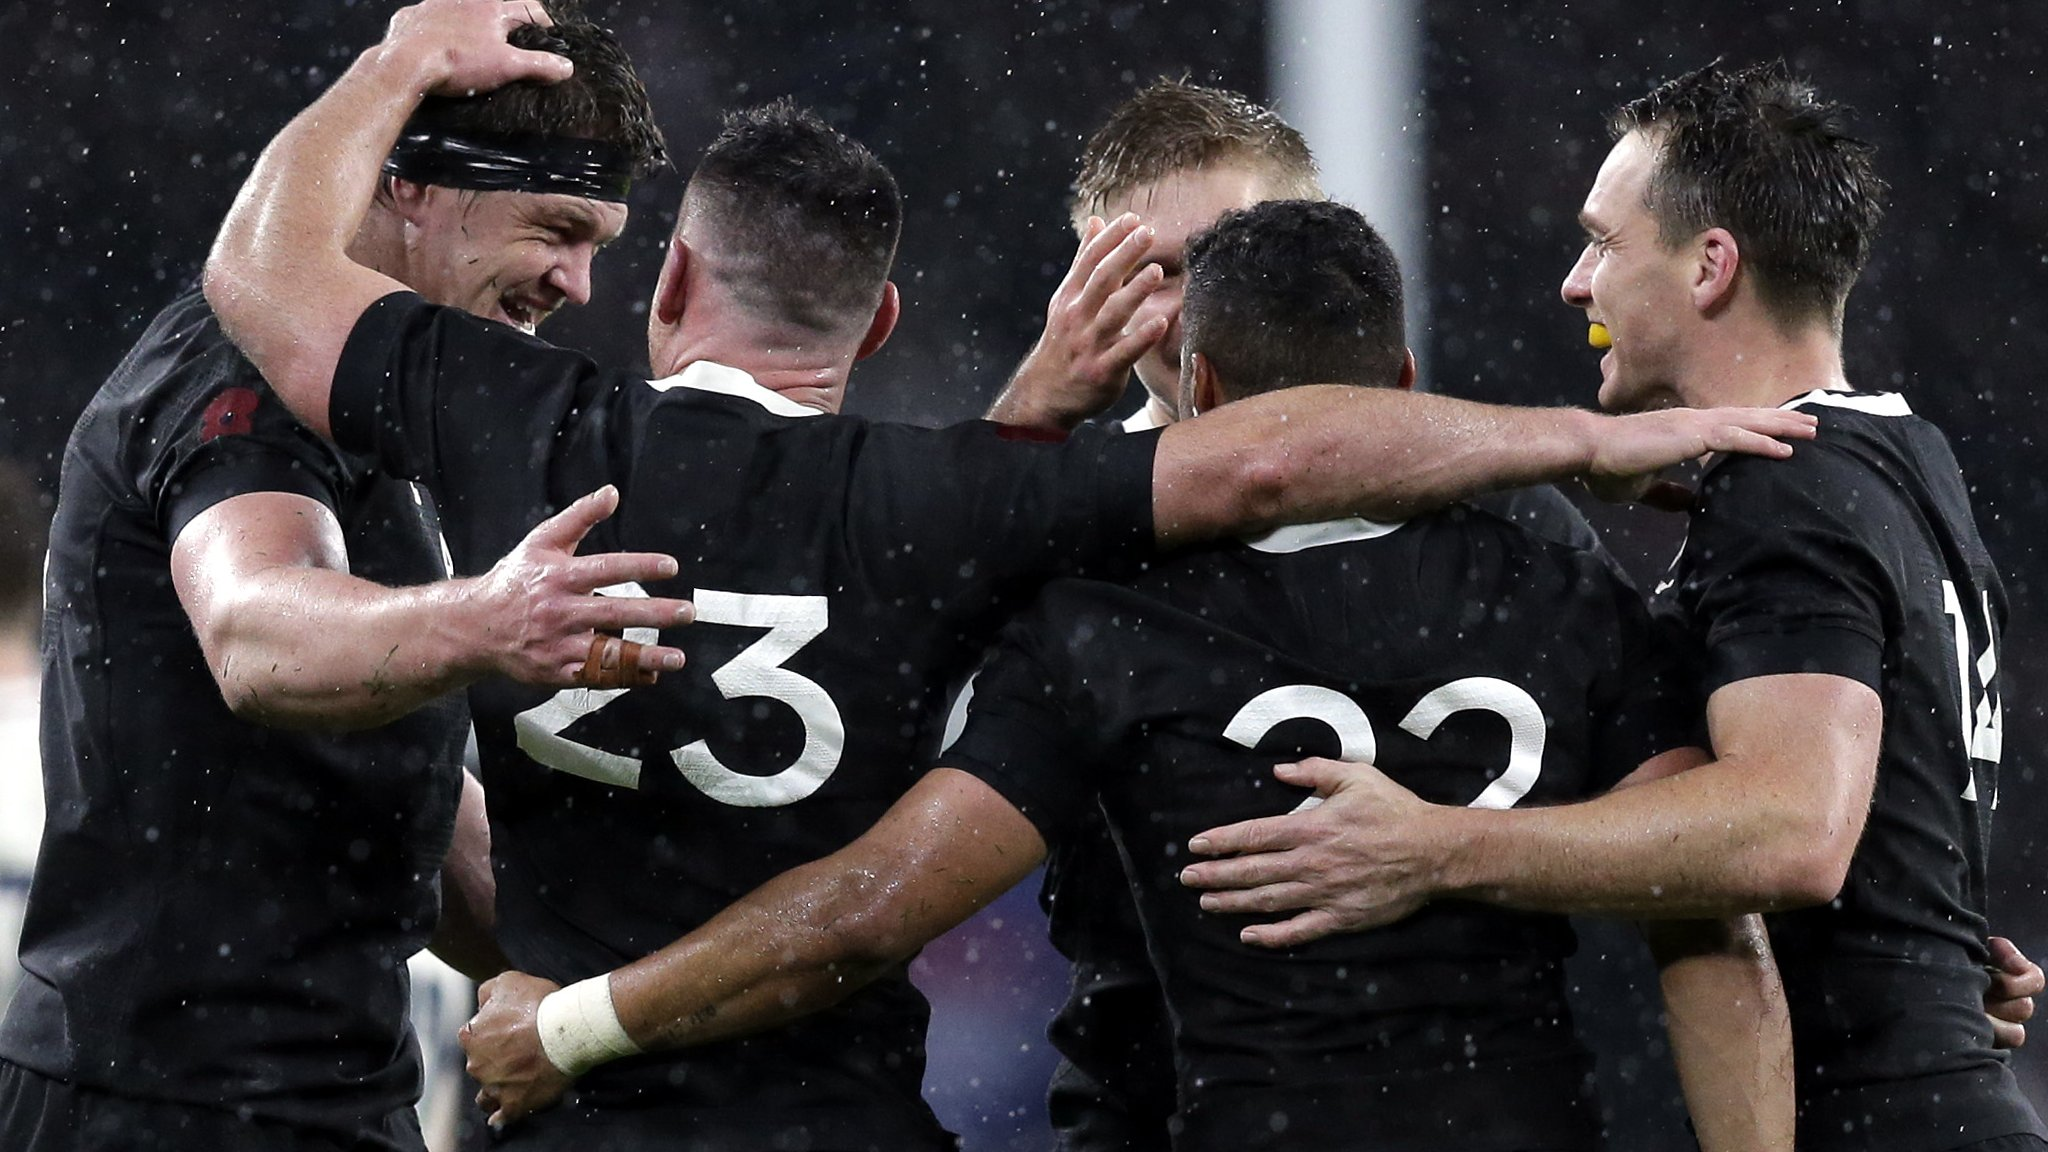 'All Blacks will be switched on after scare in England' - Bowe